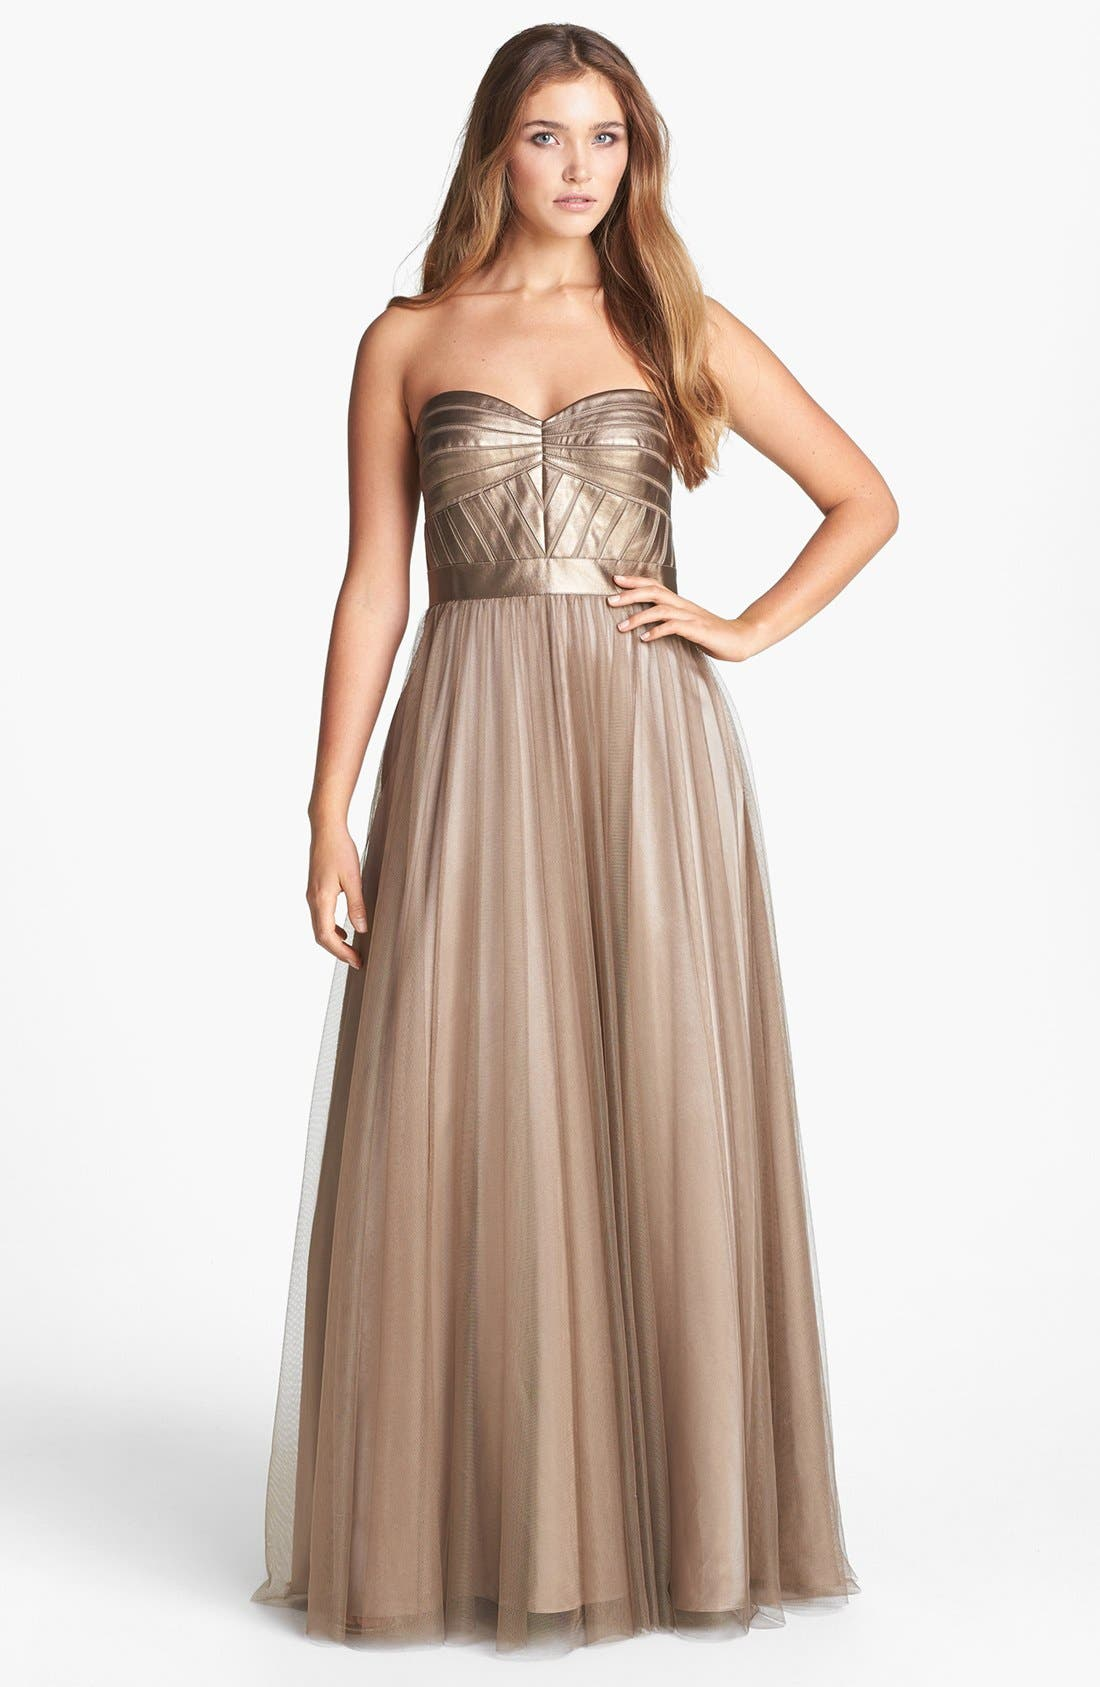 Alternate Image 1 Selected - Aidan Mattox Faux Leather & Tulle Ballgown